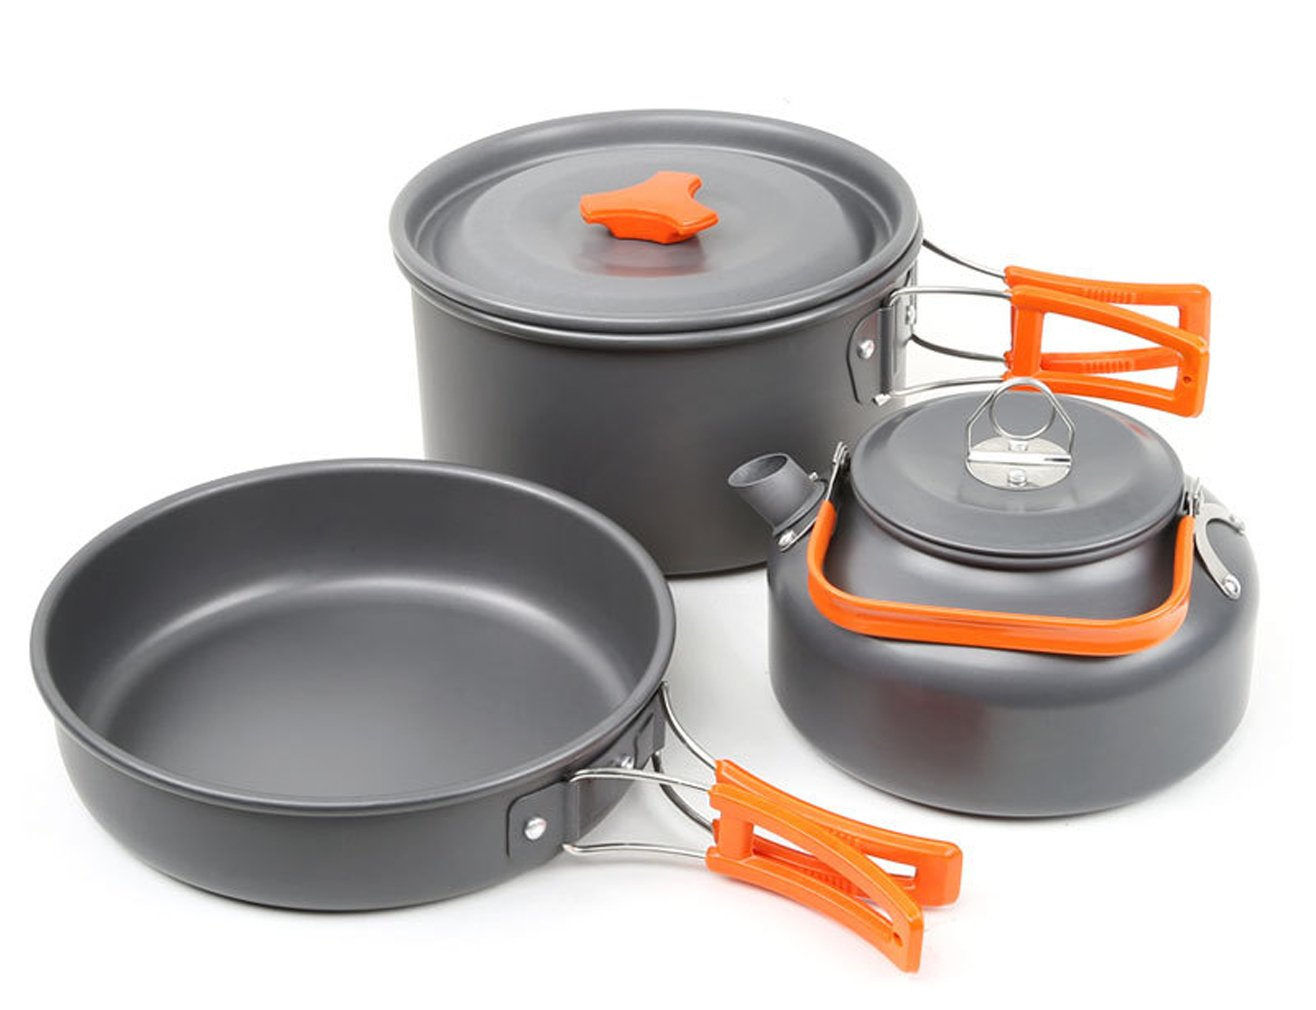 Collection Here 1 To 2 People Camping Cookware Kit Portable Kitchen Pan Pot Set Suitable For Hiking Camping Fine Quality Camping & Hiking Sports & Entertainment